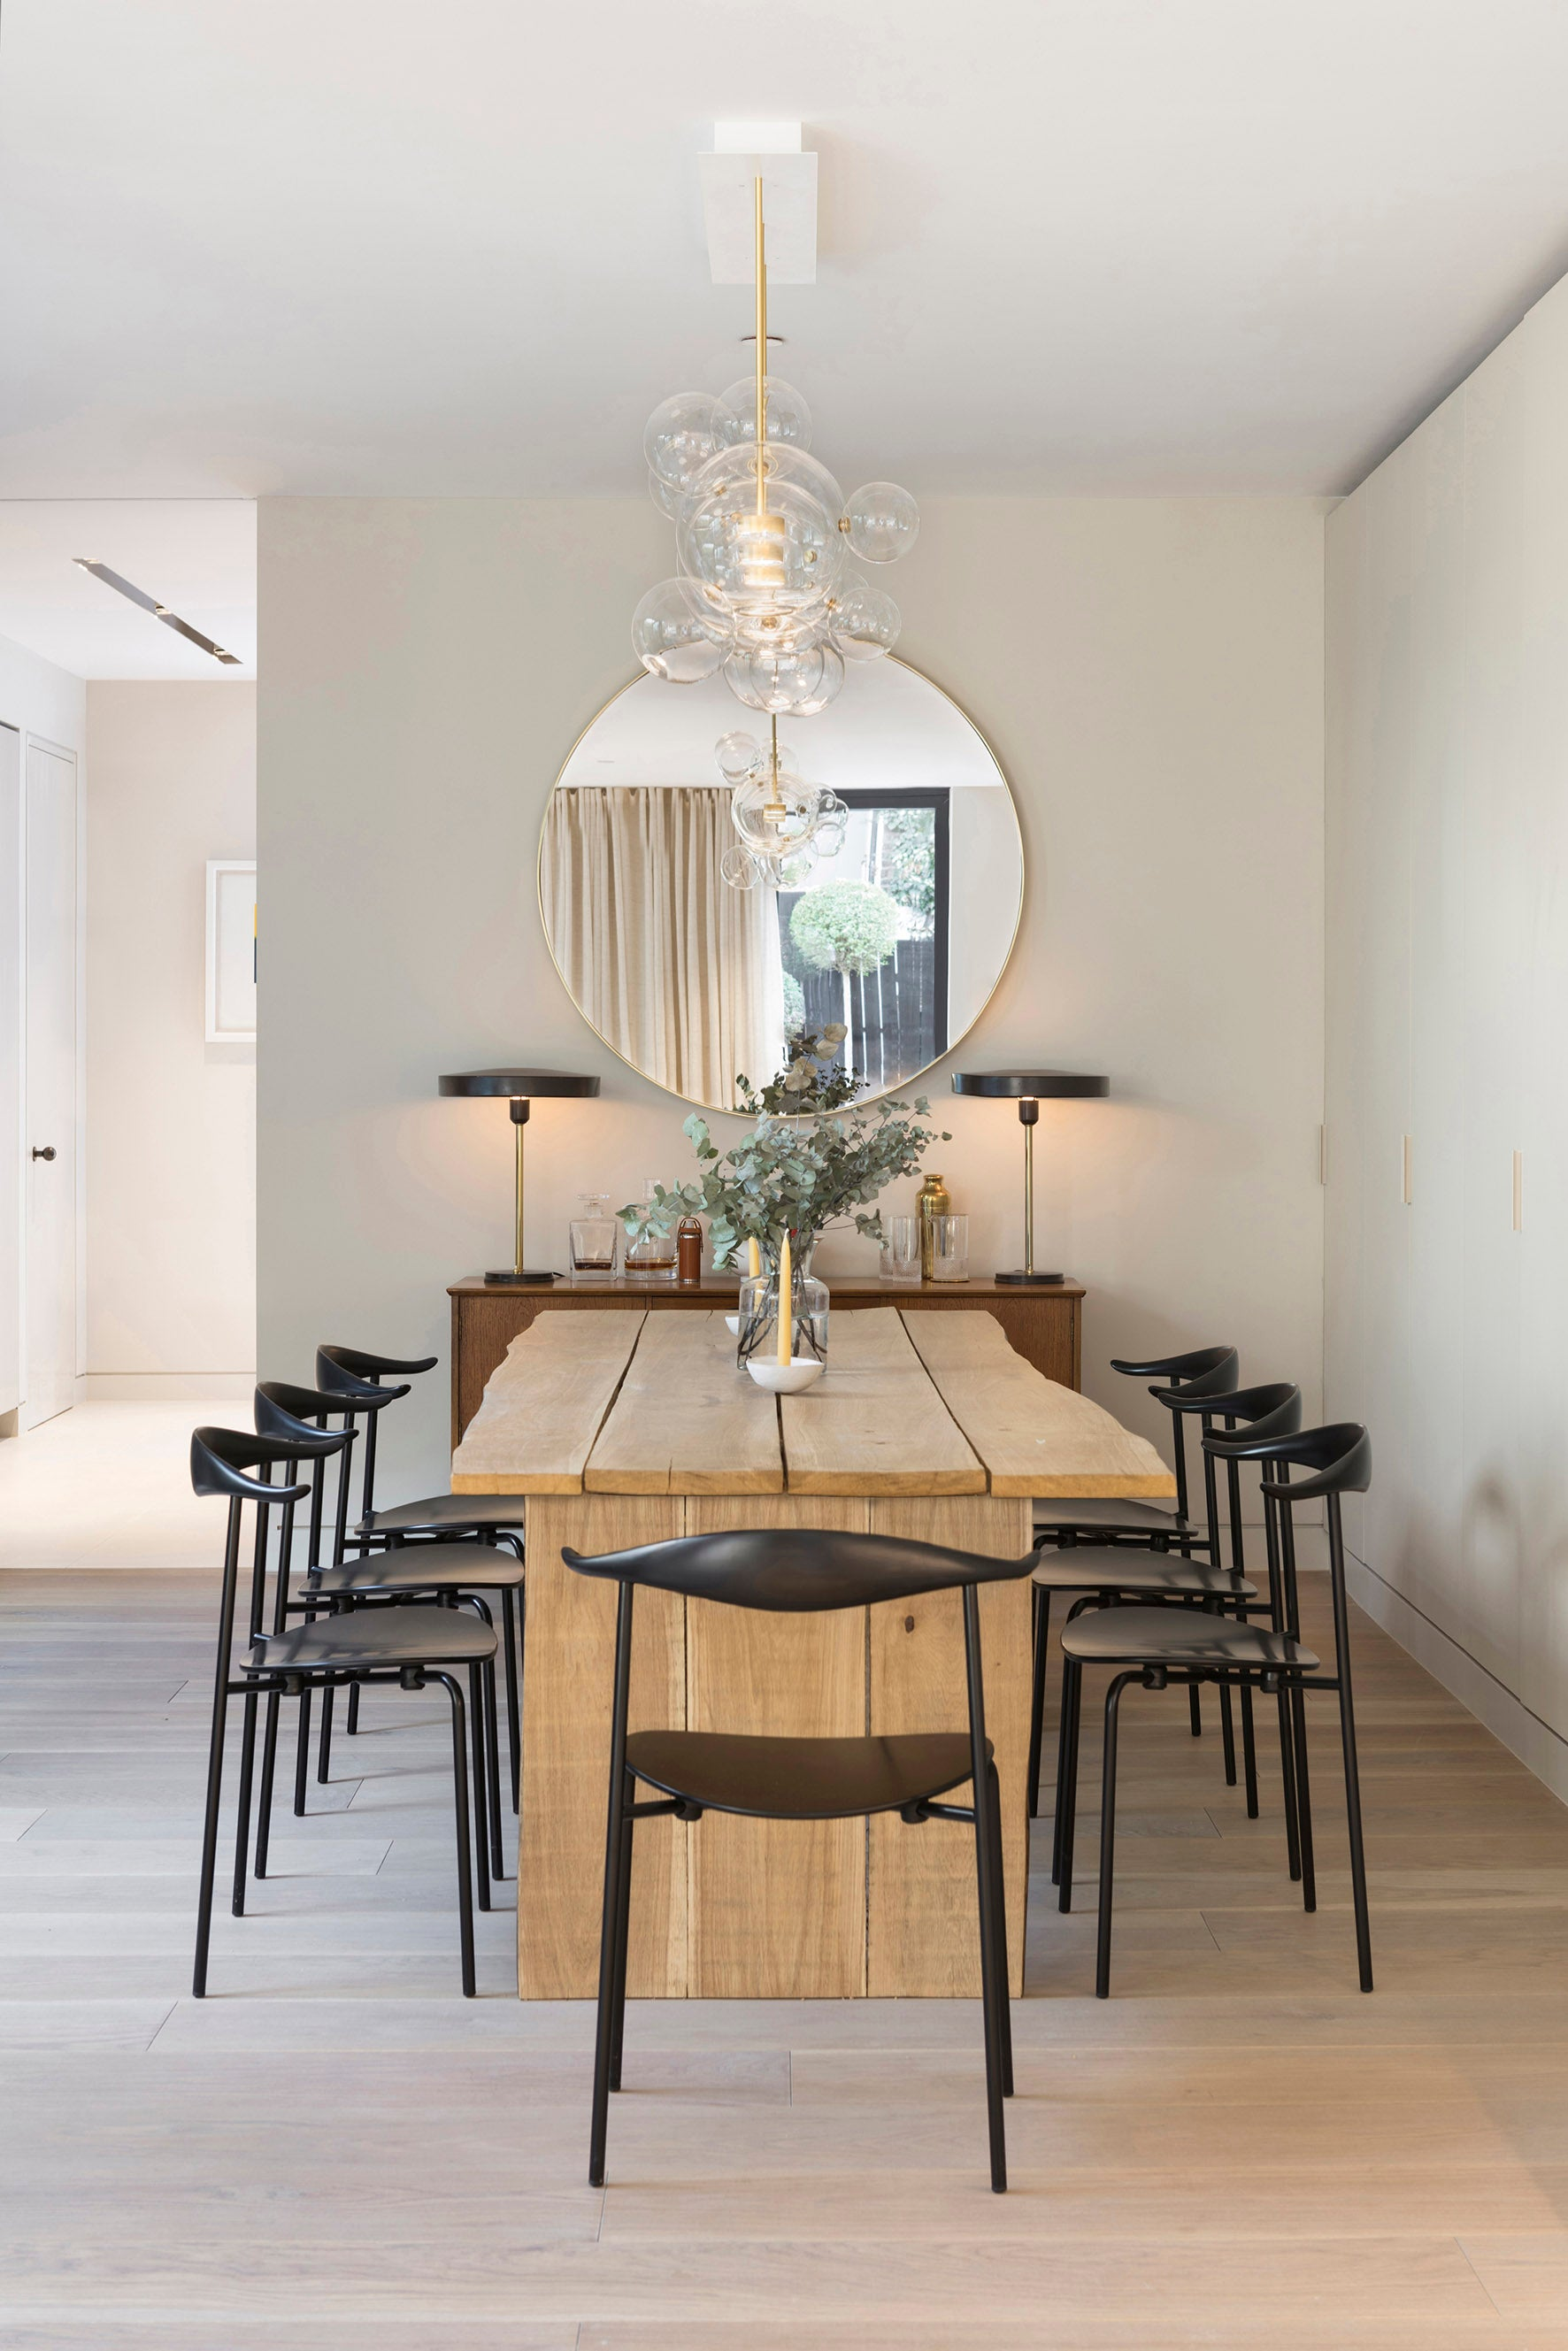 Echlin Studio Leverton House Luxury Residence Dining Room